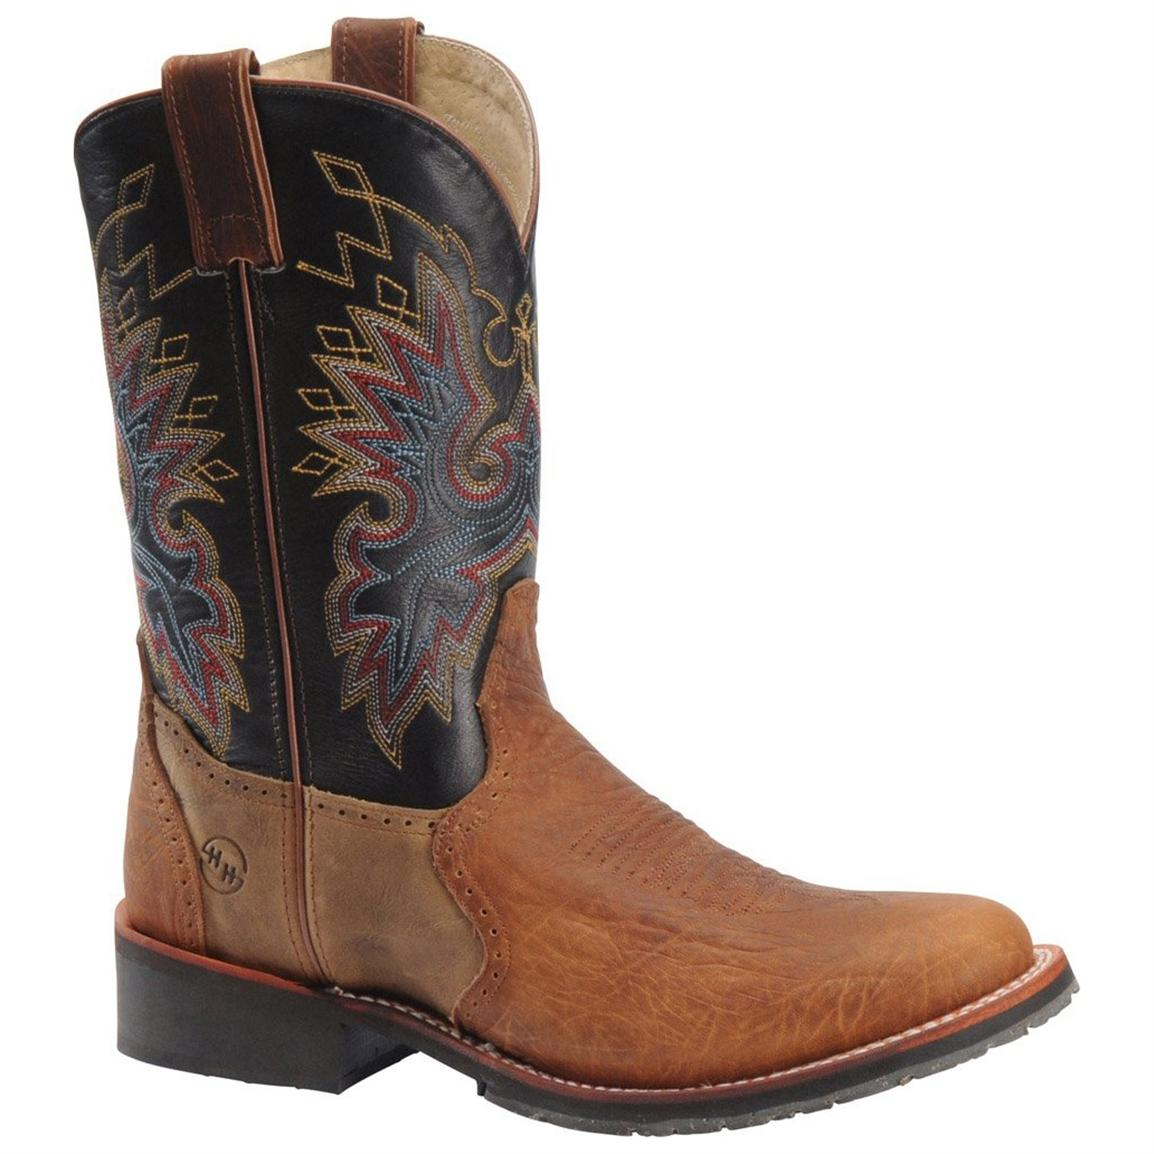 Men's 11 inch Double H® ICE Roper Cowboy Boots